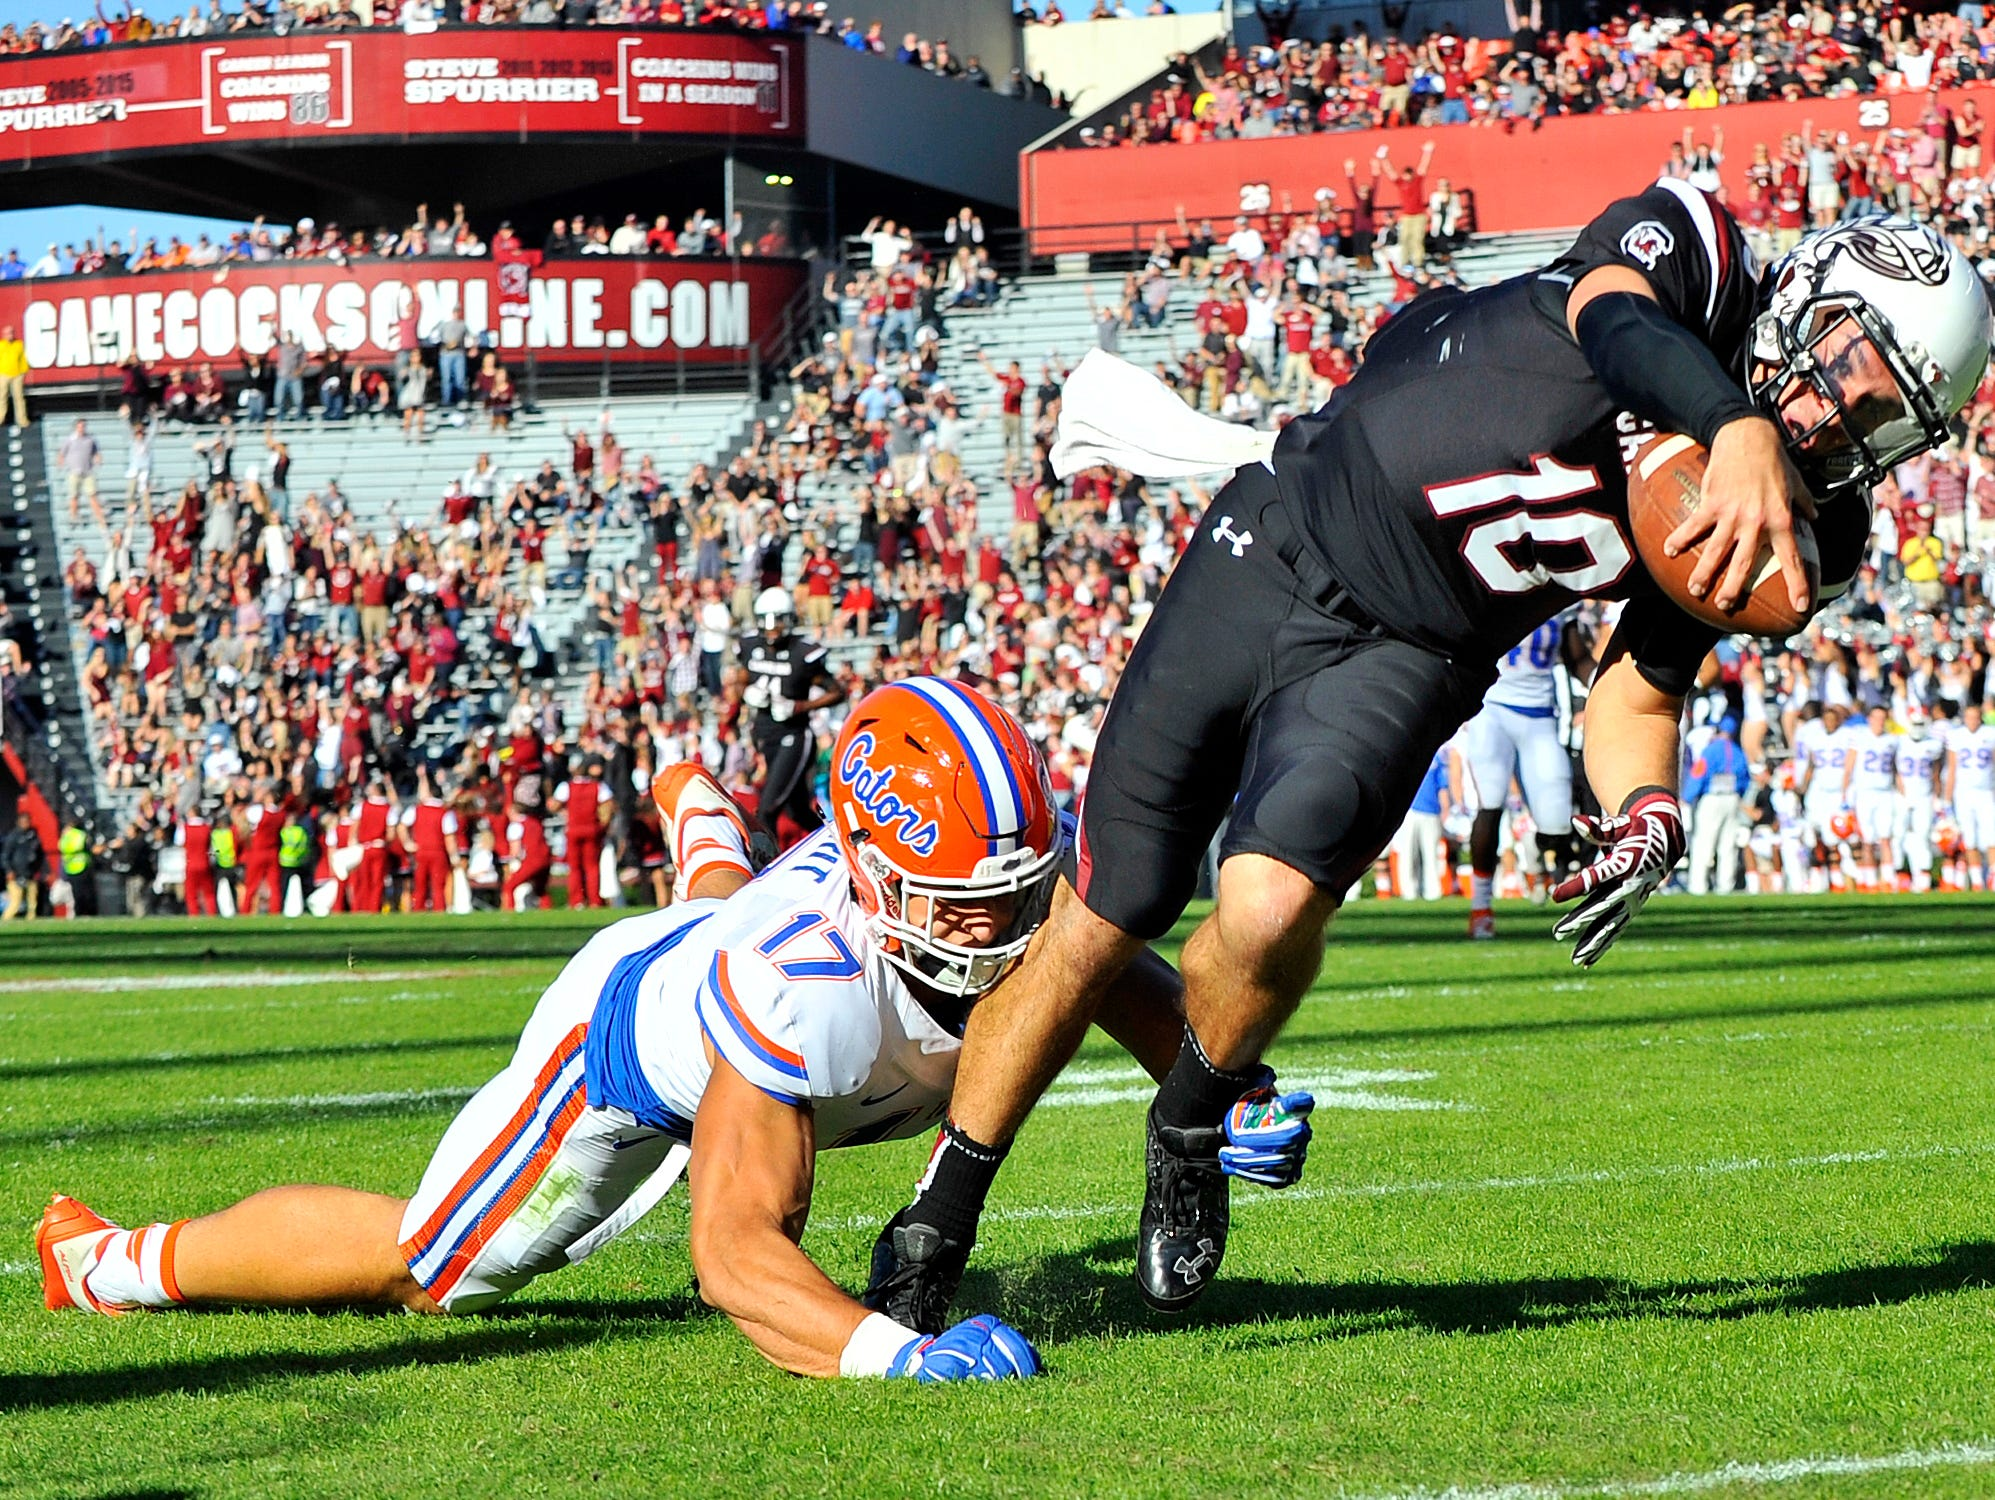 USC quarterback Perry Orth (10) breaks a tackle by Florida defensive end Jordan Sherit (17) for the touchdown at Williams-Brice Stadium in Columbia on Nov. 14, 2015.